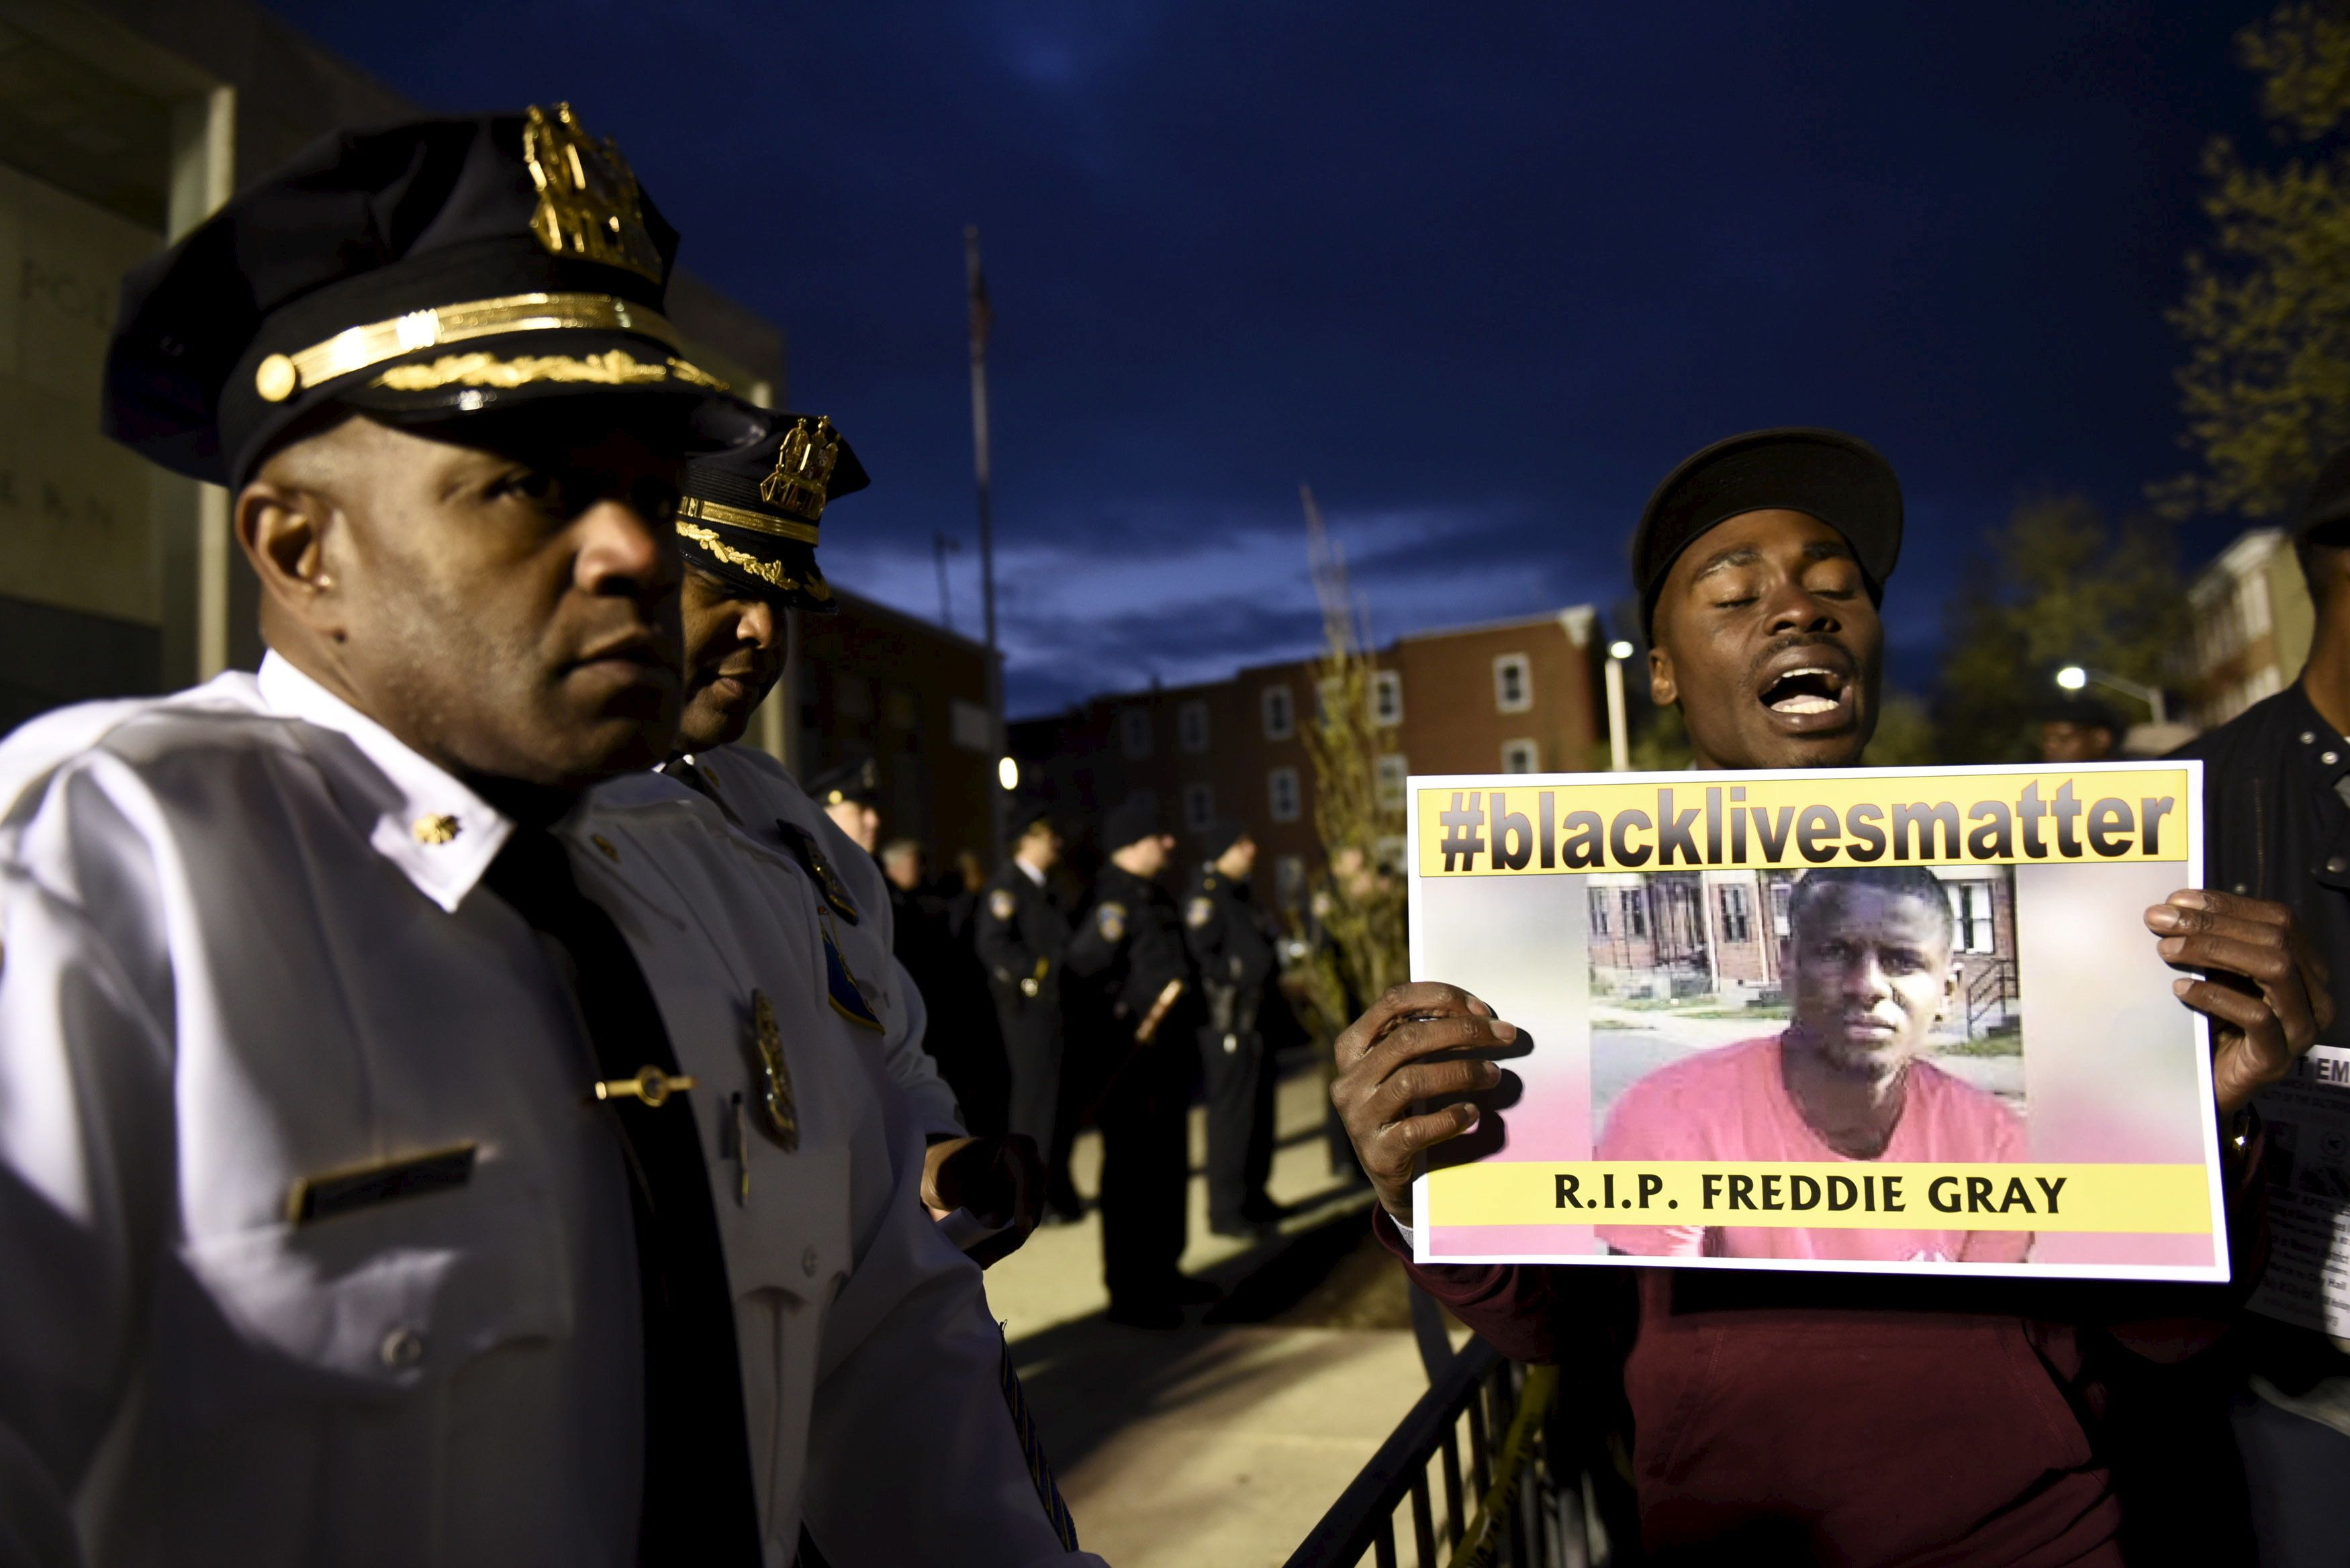 A demonstrator holds a sign in front of the Baltimore Police Department Western District station during a protest against the death in police custody of Freddie Gray in Baltimore April 23, 2015. The U.S. Southern Christian Leadership Conference will independently investigate the death of a black Baltimore man in police custody, with the local head of the civil rights group saying it lacked confidence in a police probe into the death. REUTERS/Sait Serkan Gurbuz